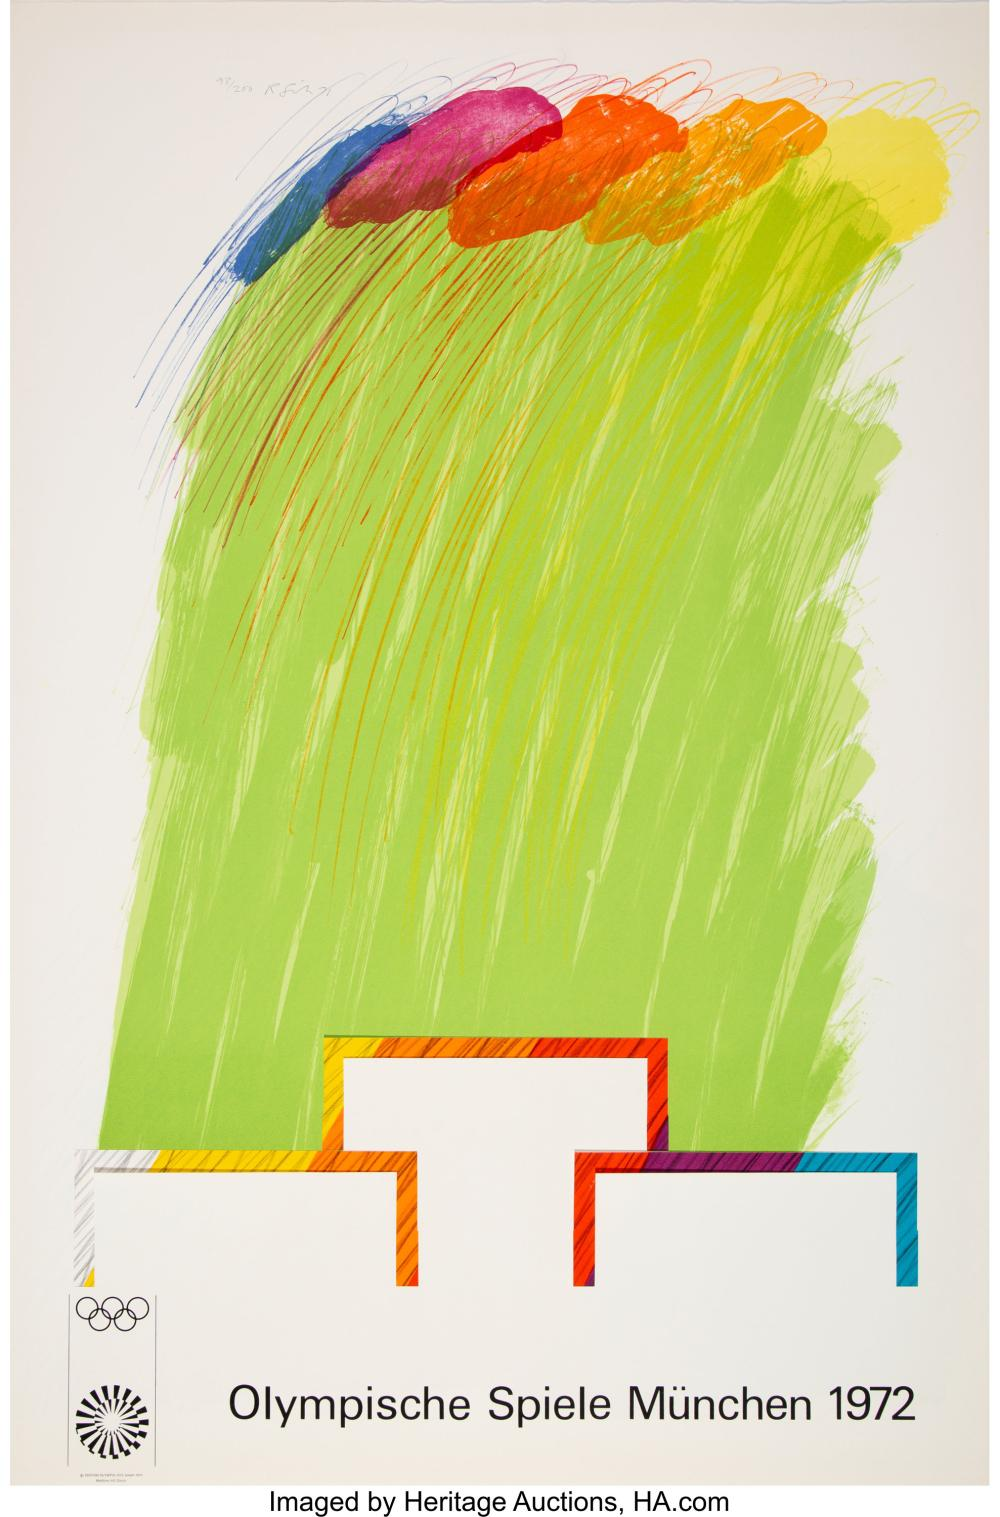 Lot 21332: Richard Smith (b. 1929) Munich Olympics 1972, 1971 Lithograph and collage in col